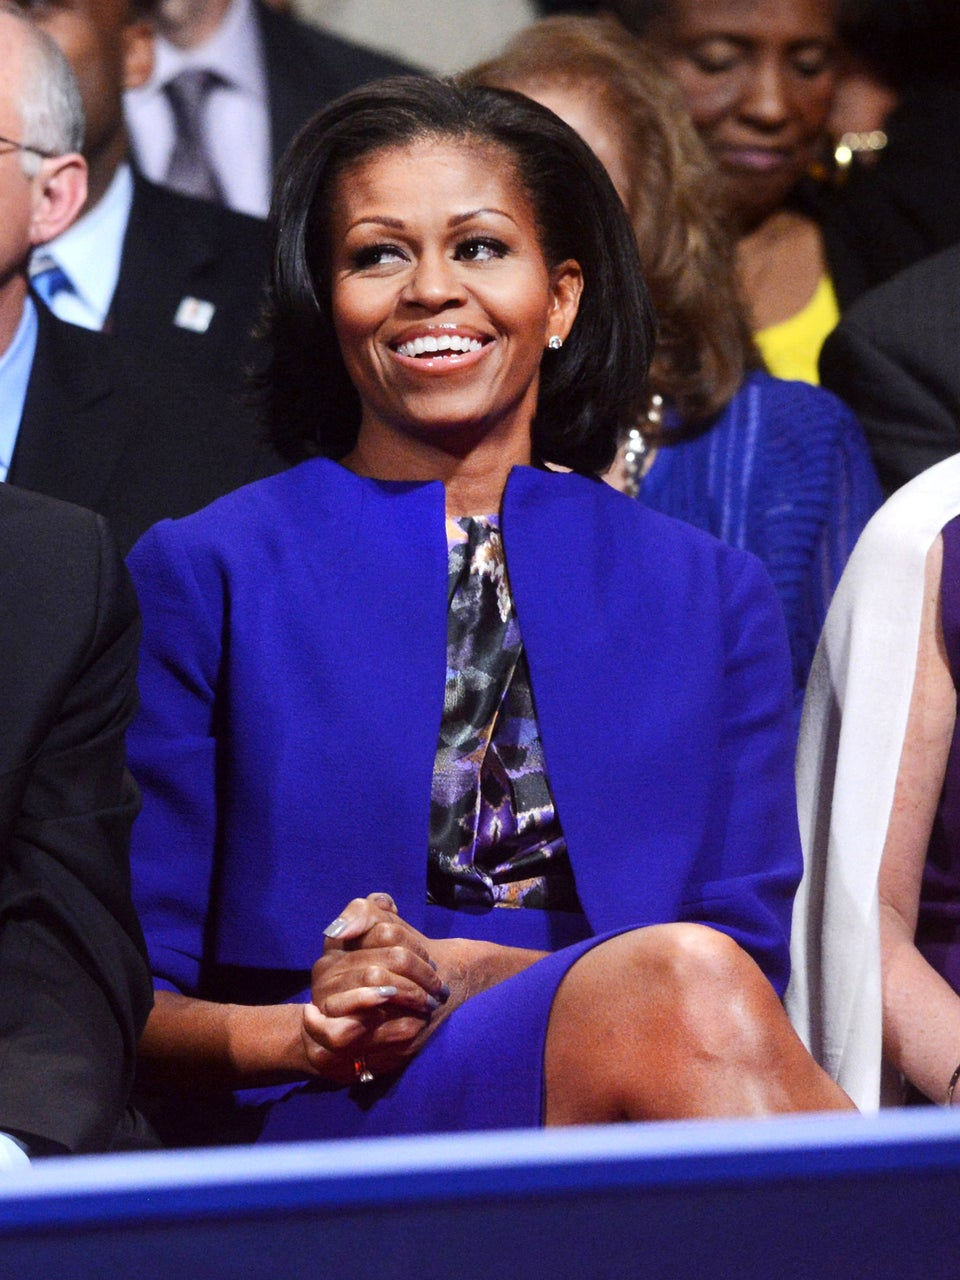 Michelle Obama on Second Presidential Debate: 'I Know He's Gonna Do Well'